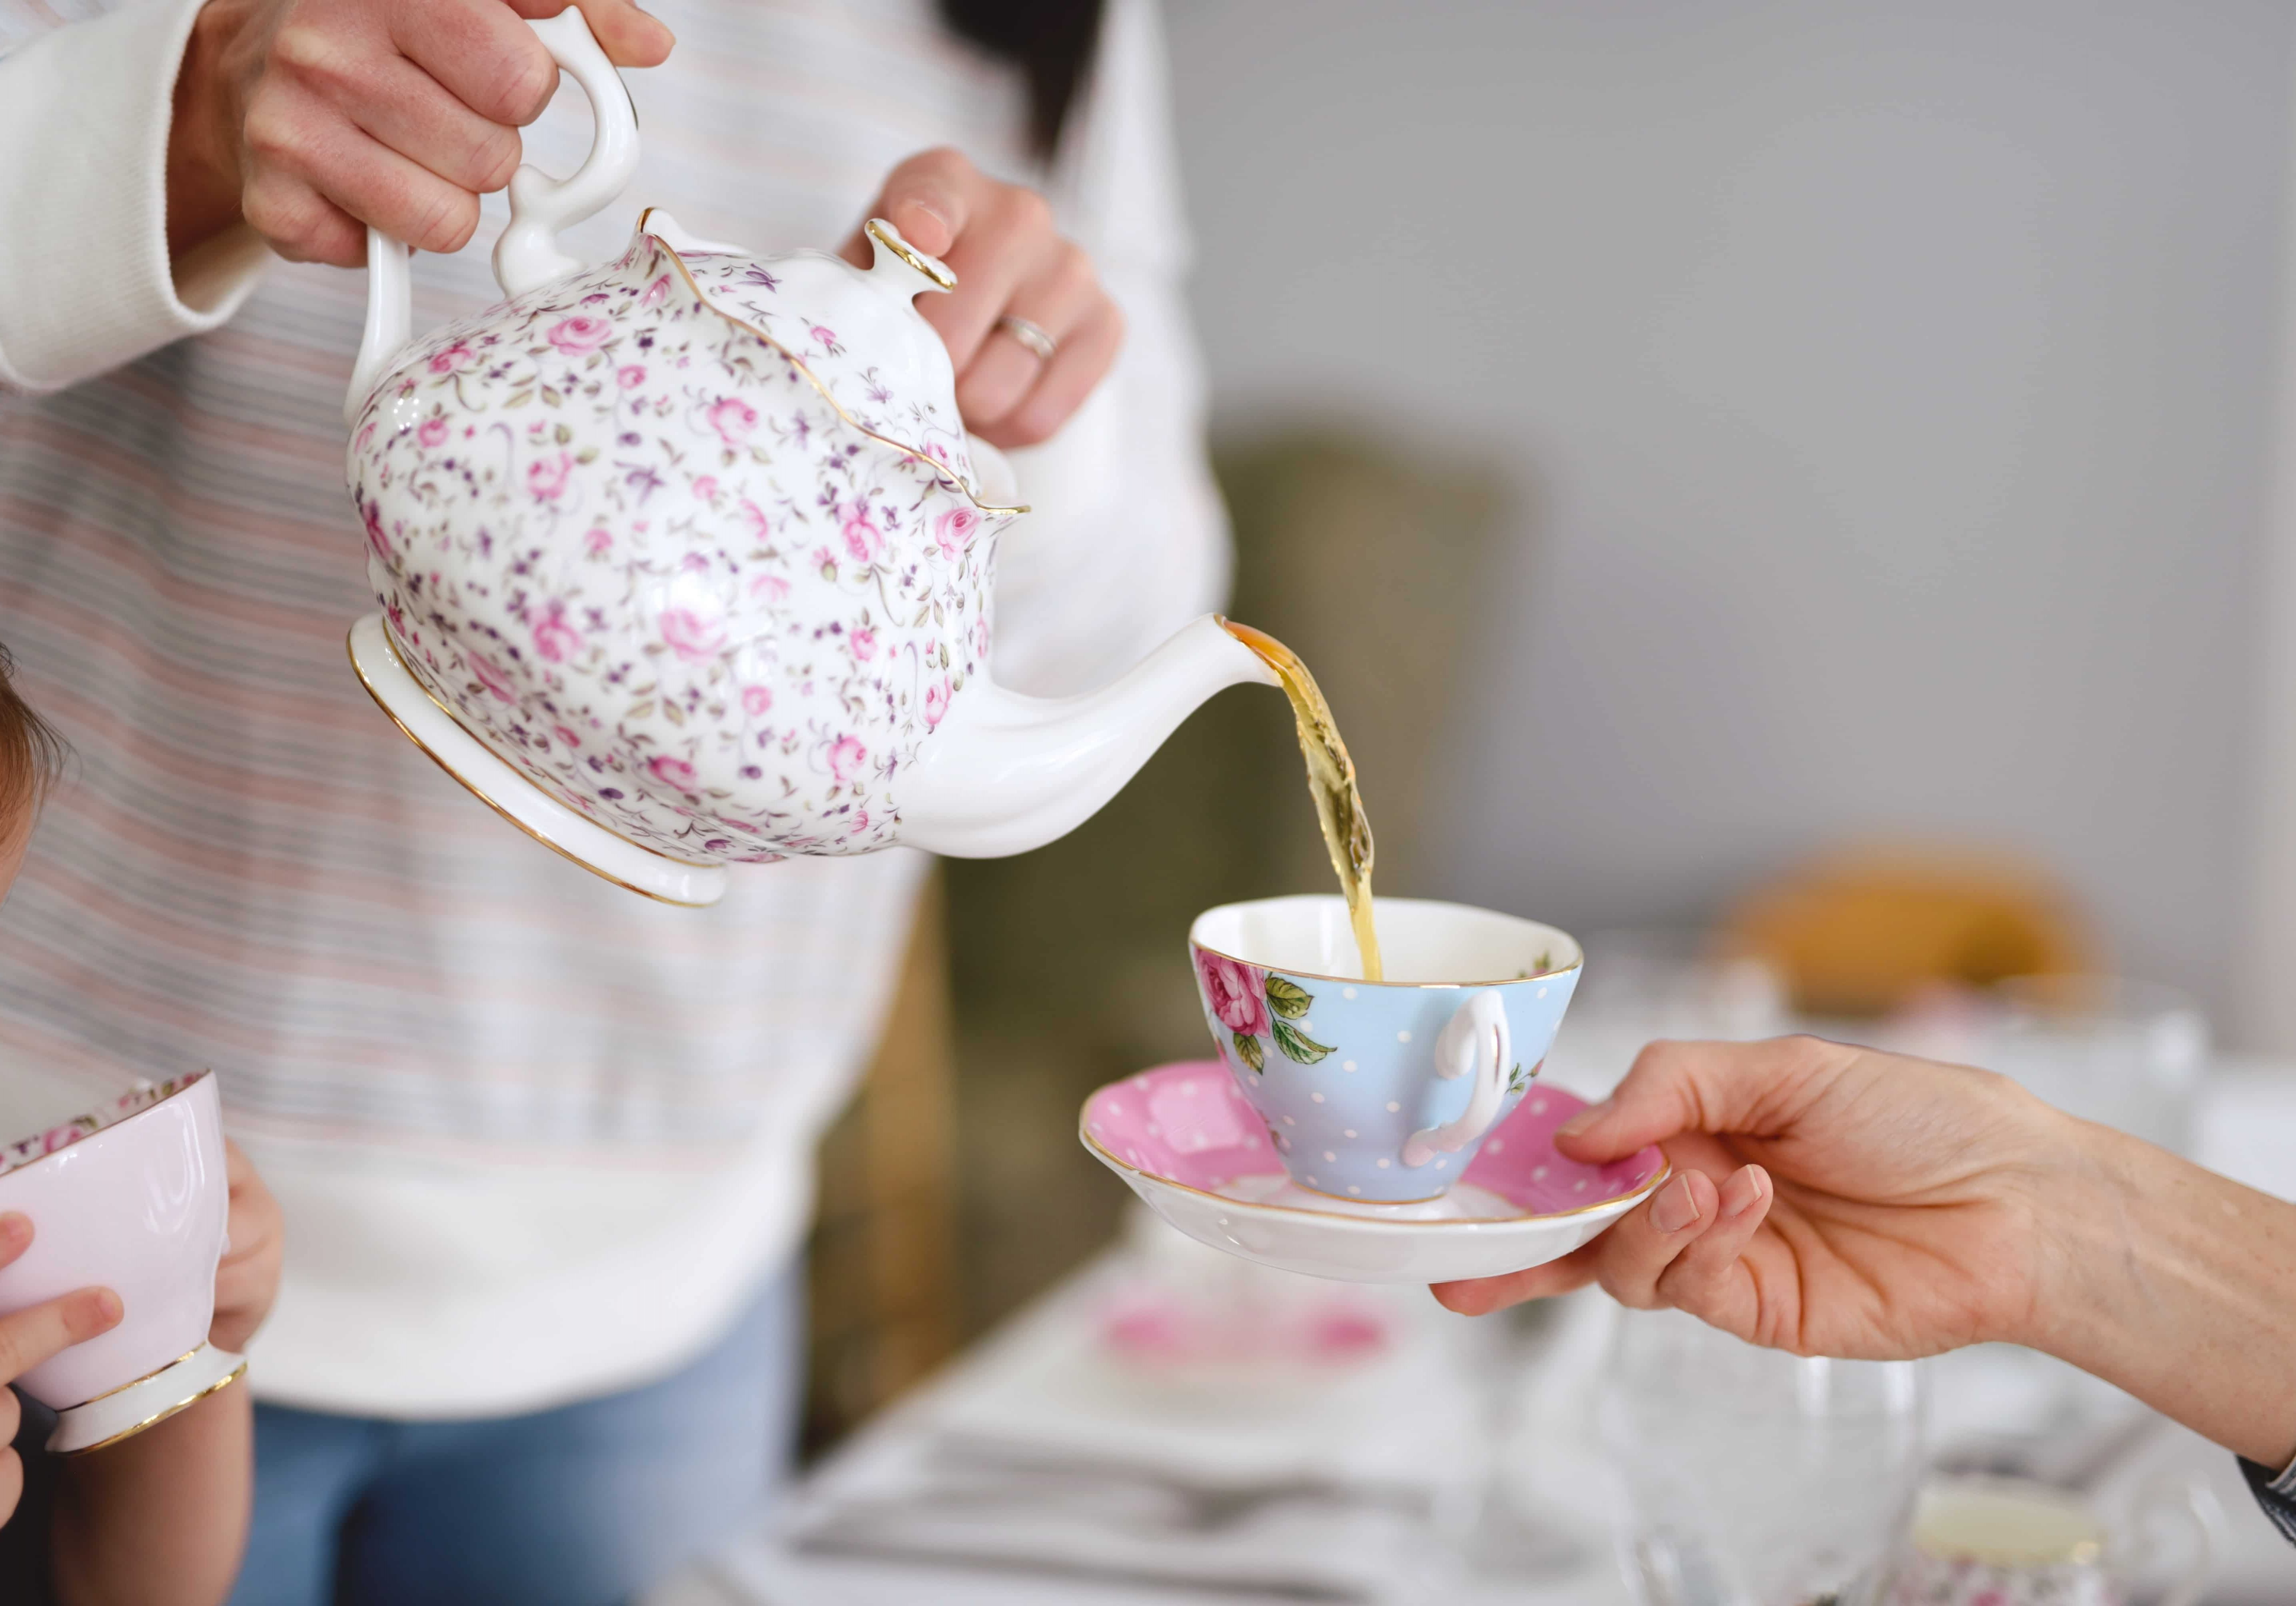 Hand pouring tea from a teapot into a cup and saucer